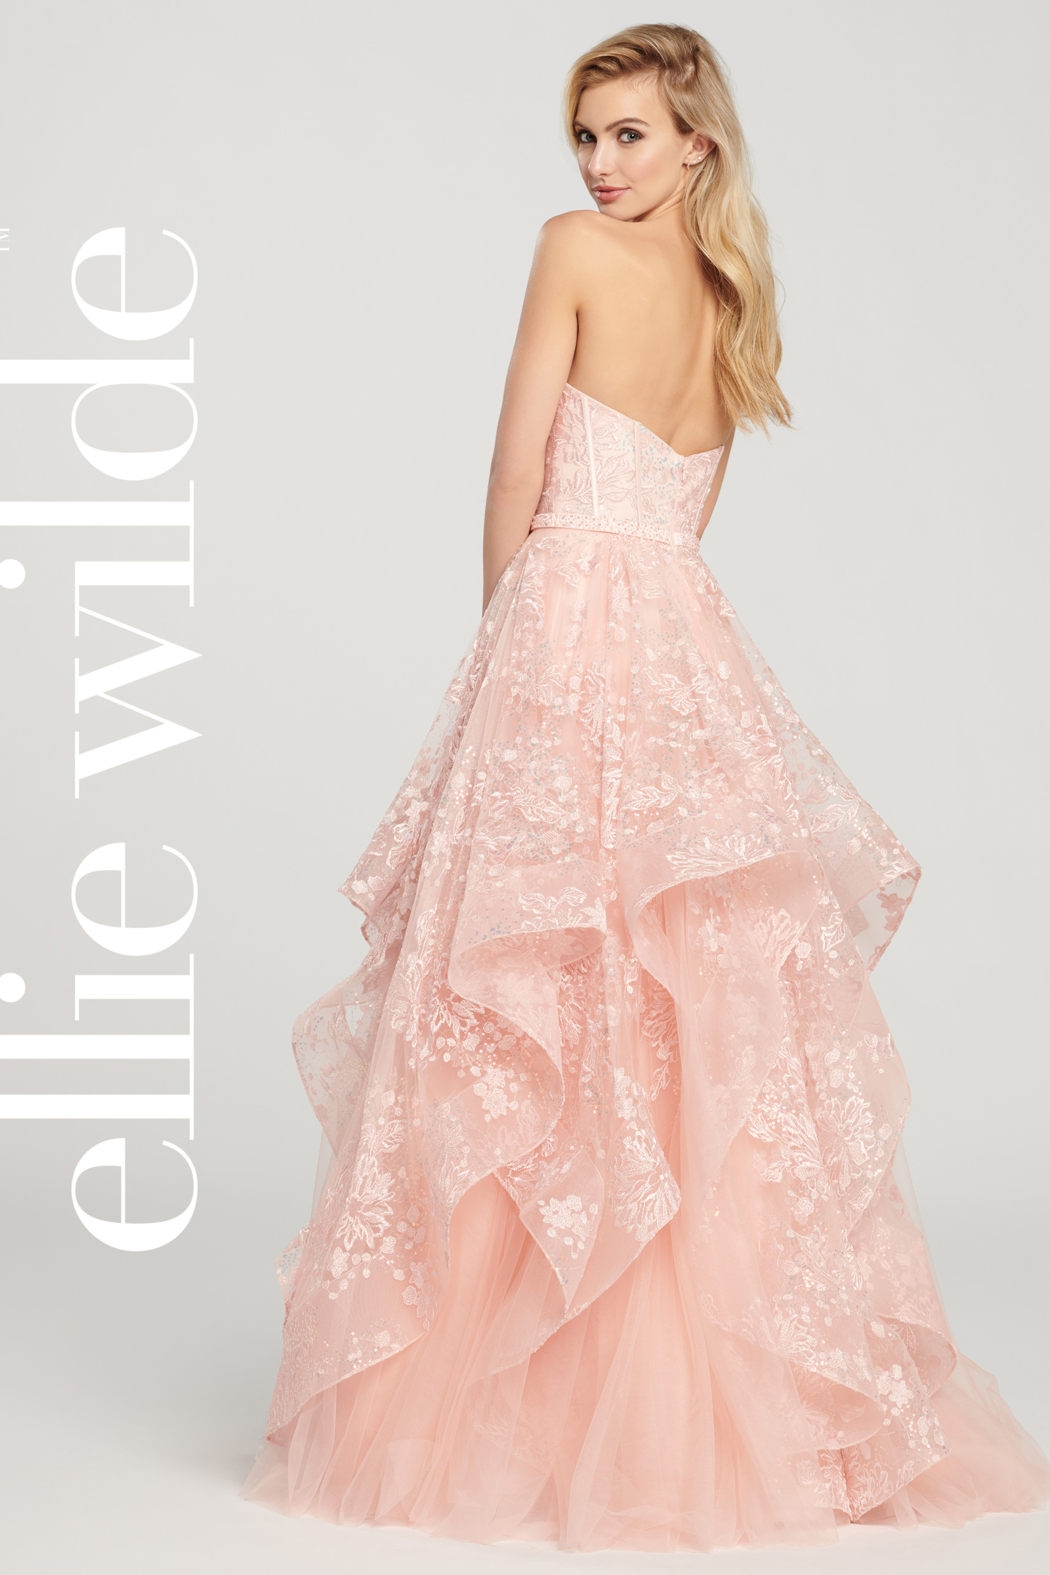 Ellie Wilde ew119033 - Strapless Layered Prom Gown - Front Full Image